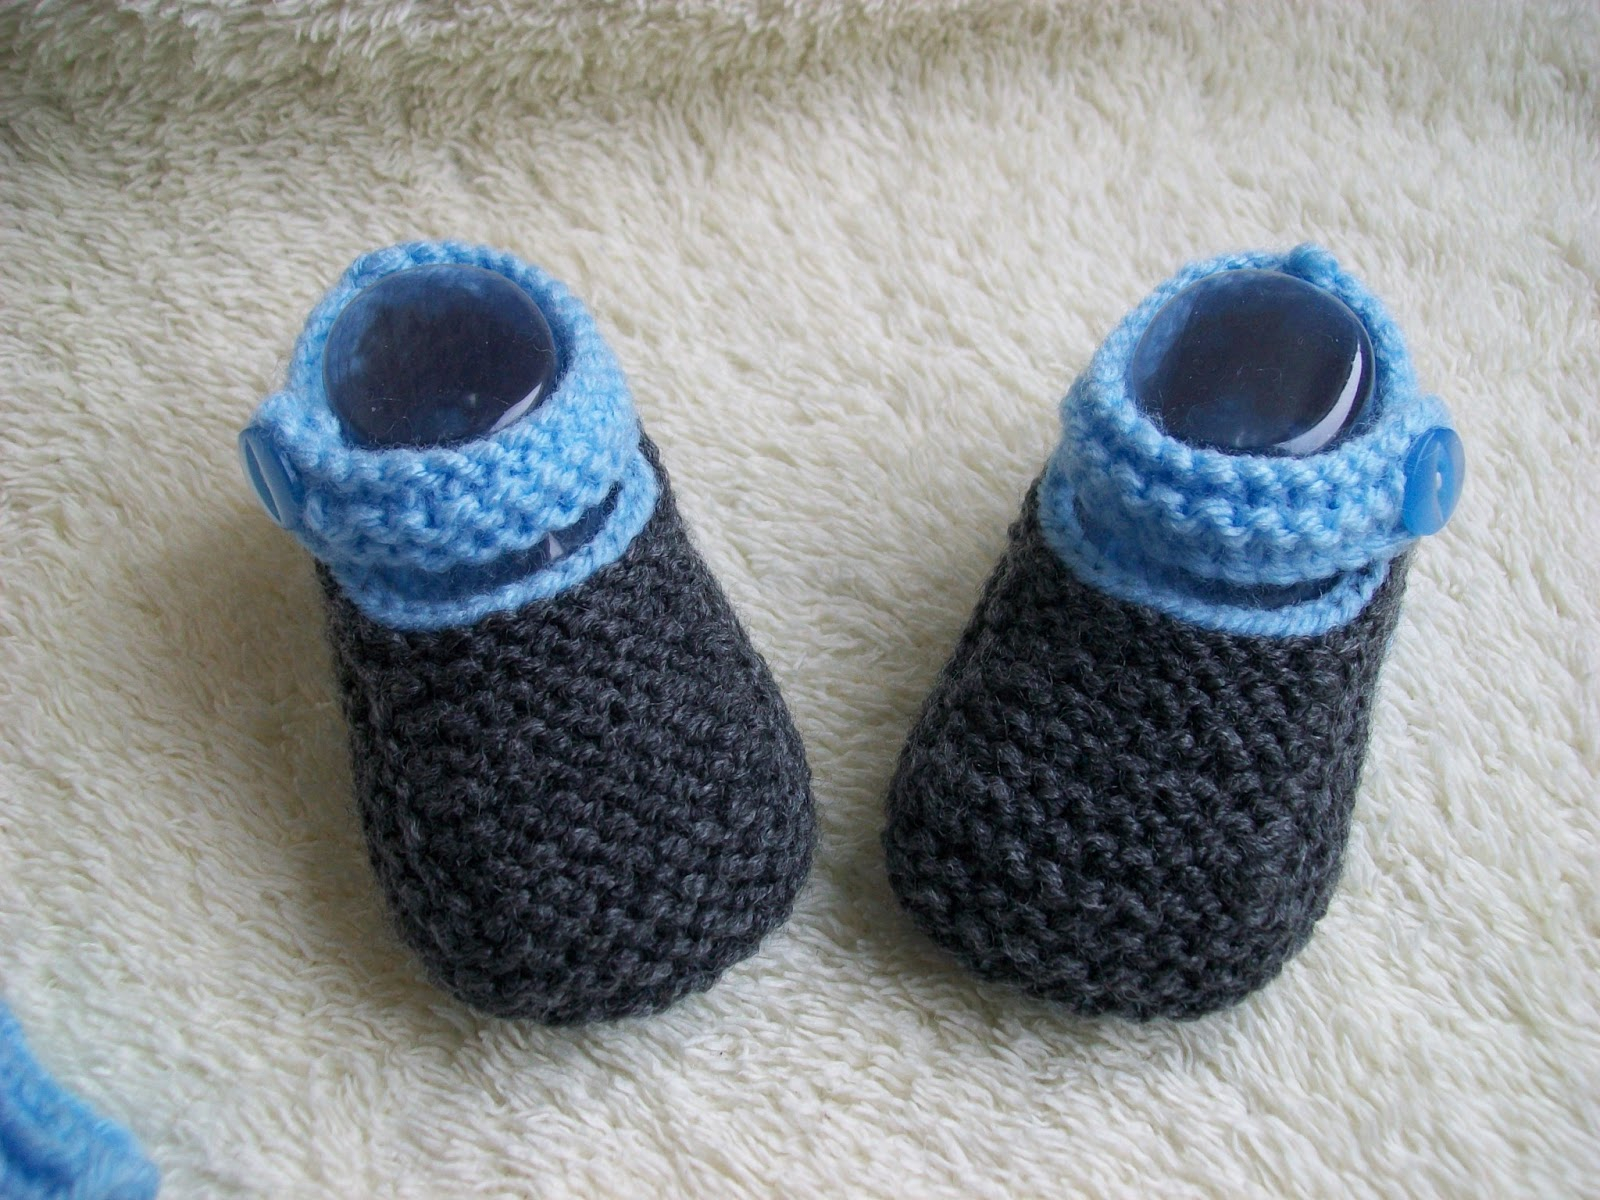 Basic Baby Booties Knitting Pattern 30 Free Patterns For Knitted Ba Booties Guide Patterns